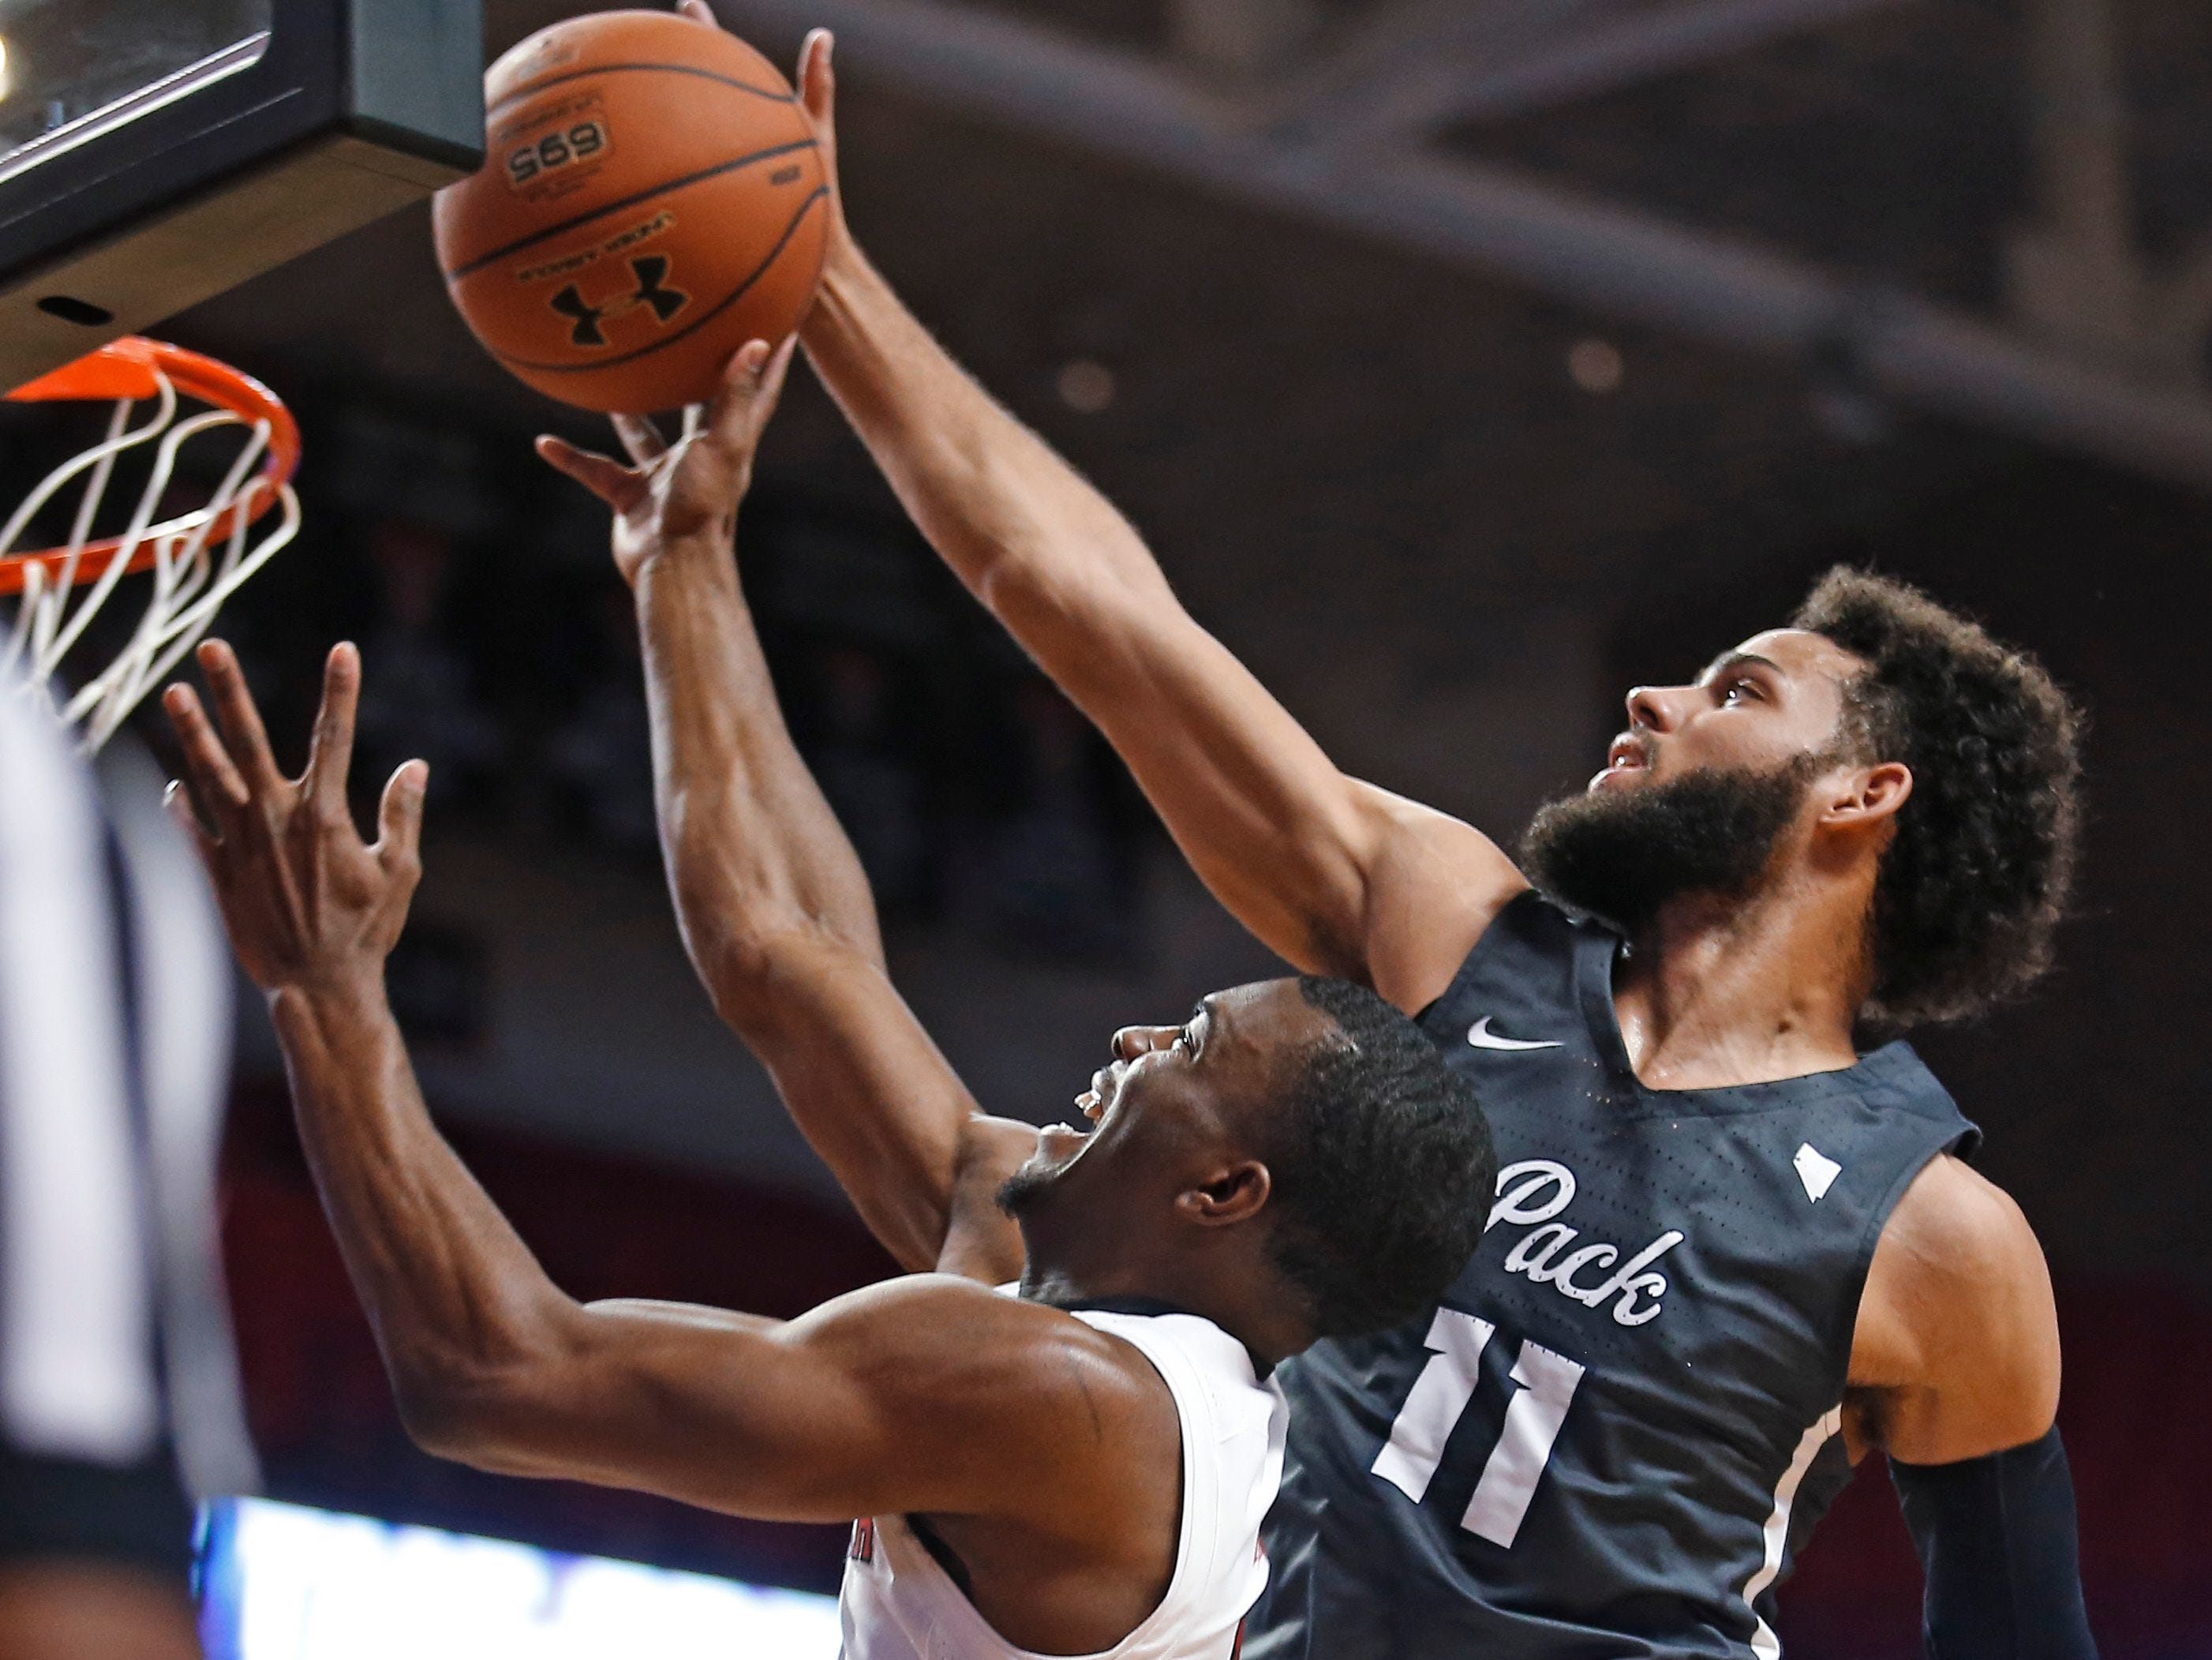 Nevada's Cody Martin tries to block a shot by Texas Tech's Keenan Evans during their game in Lubbock last season.